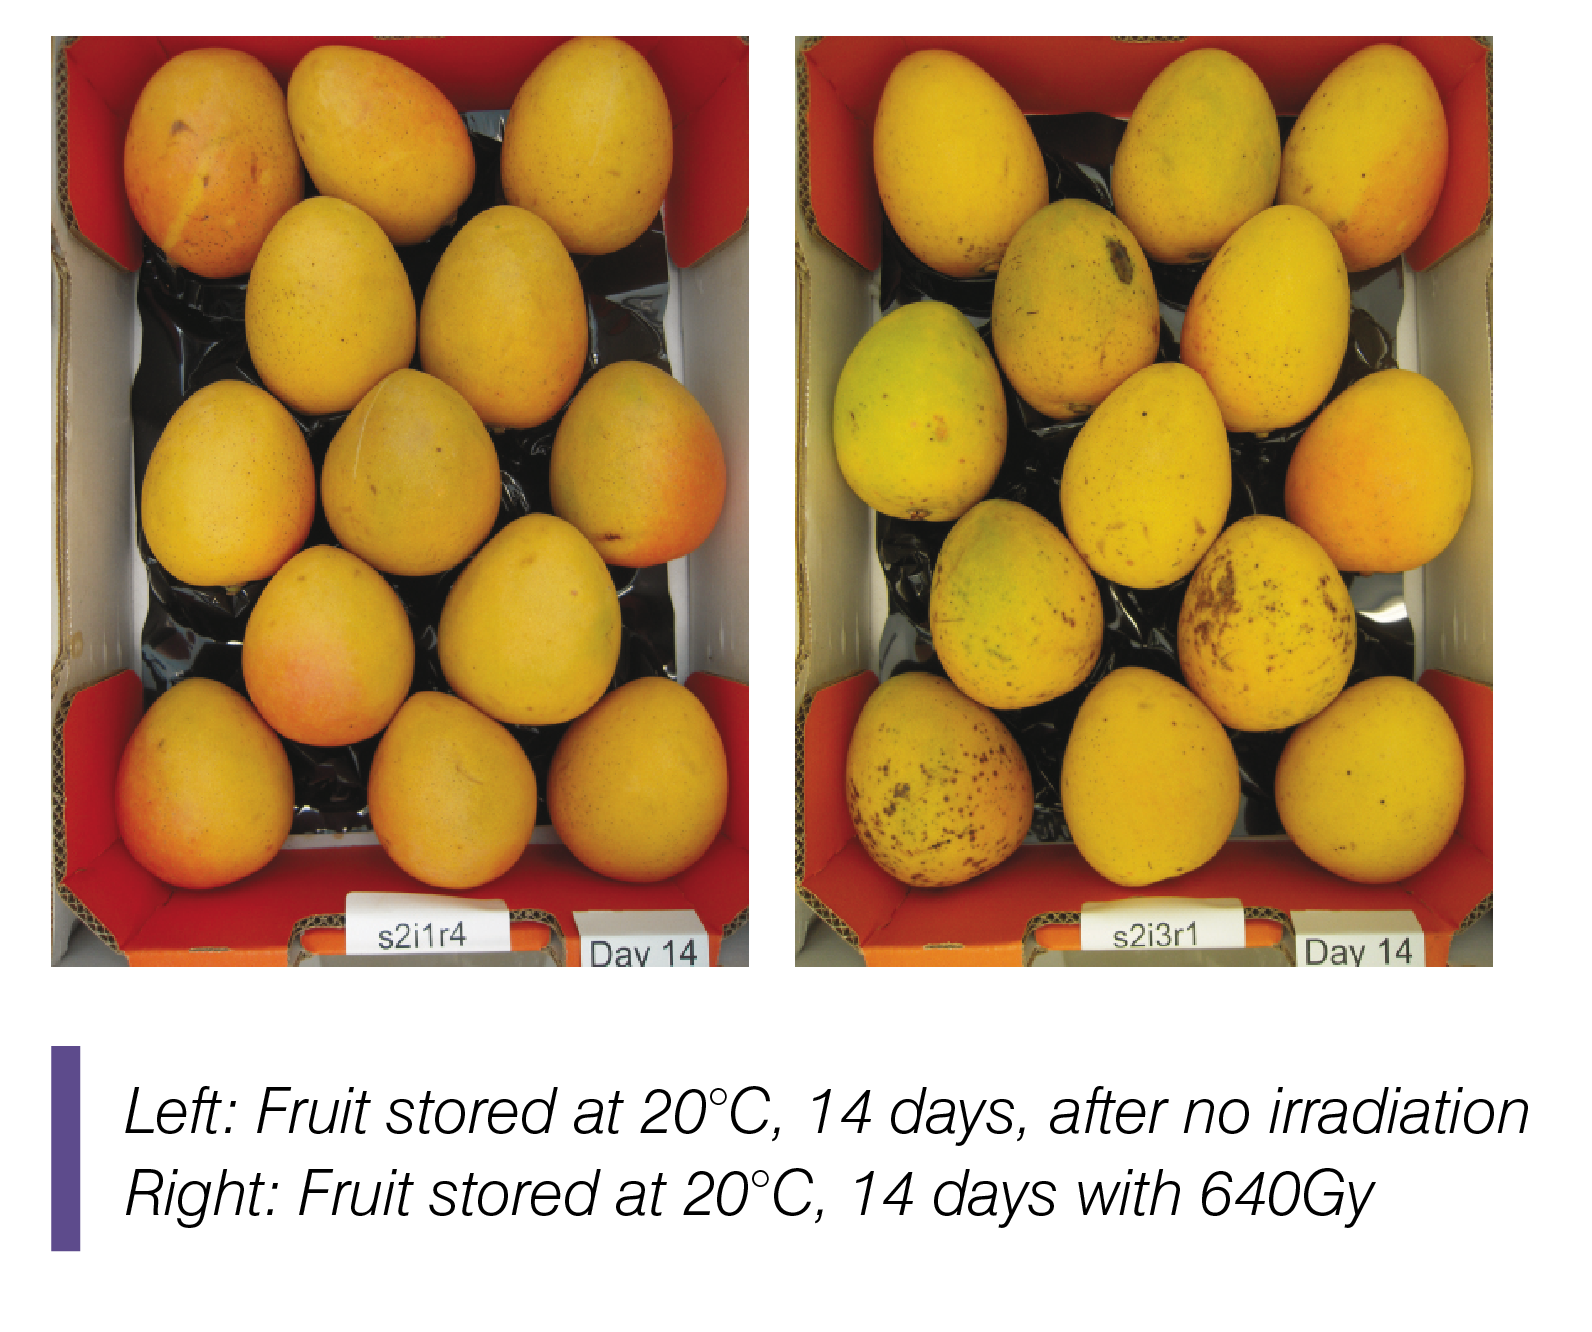 Irradiation effects in stored fruit